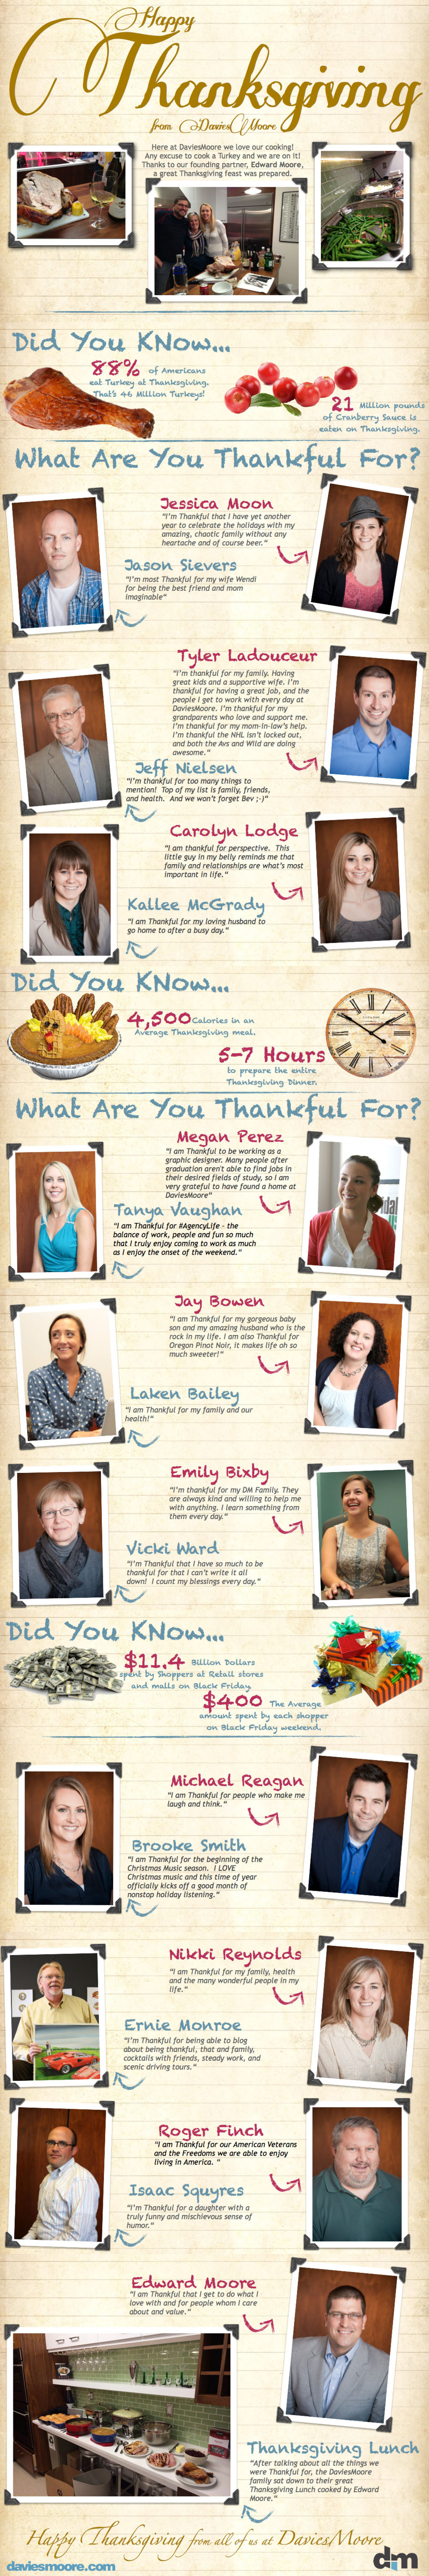 Thanksgiving Infographic from DaviesMoore Infographic